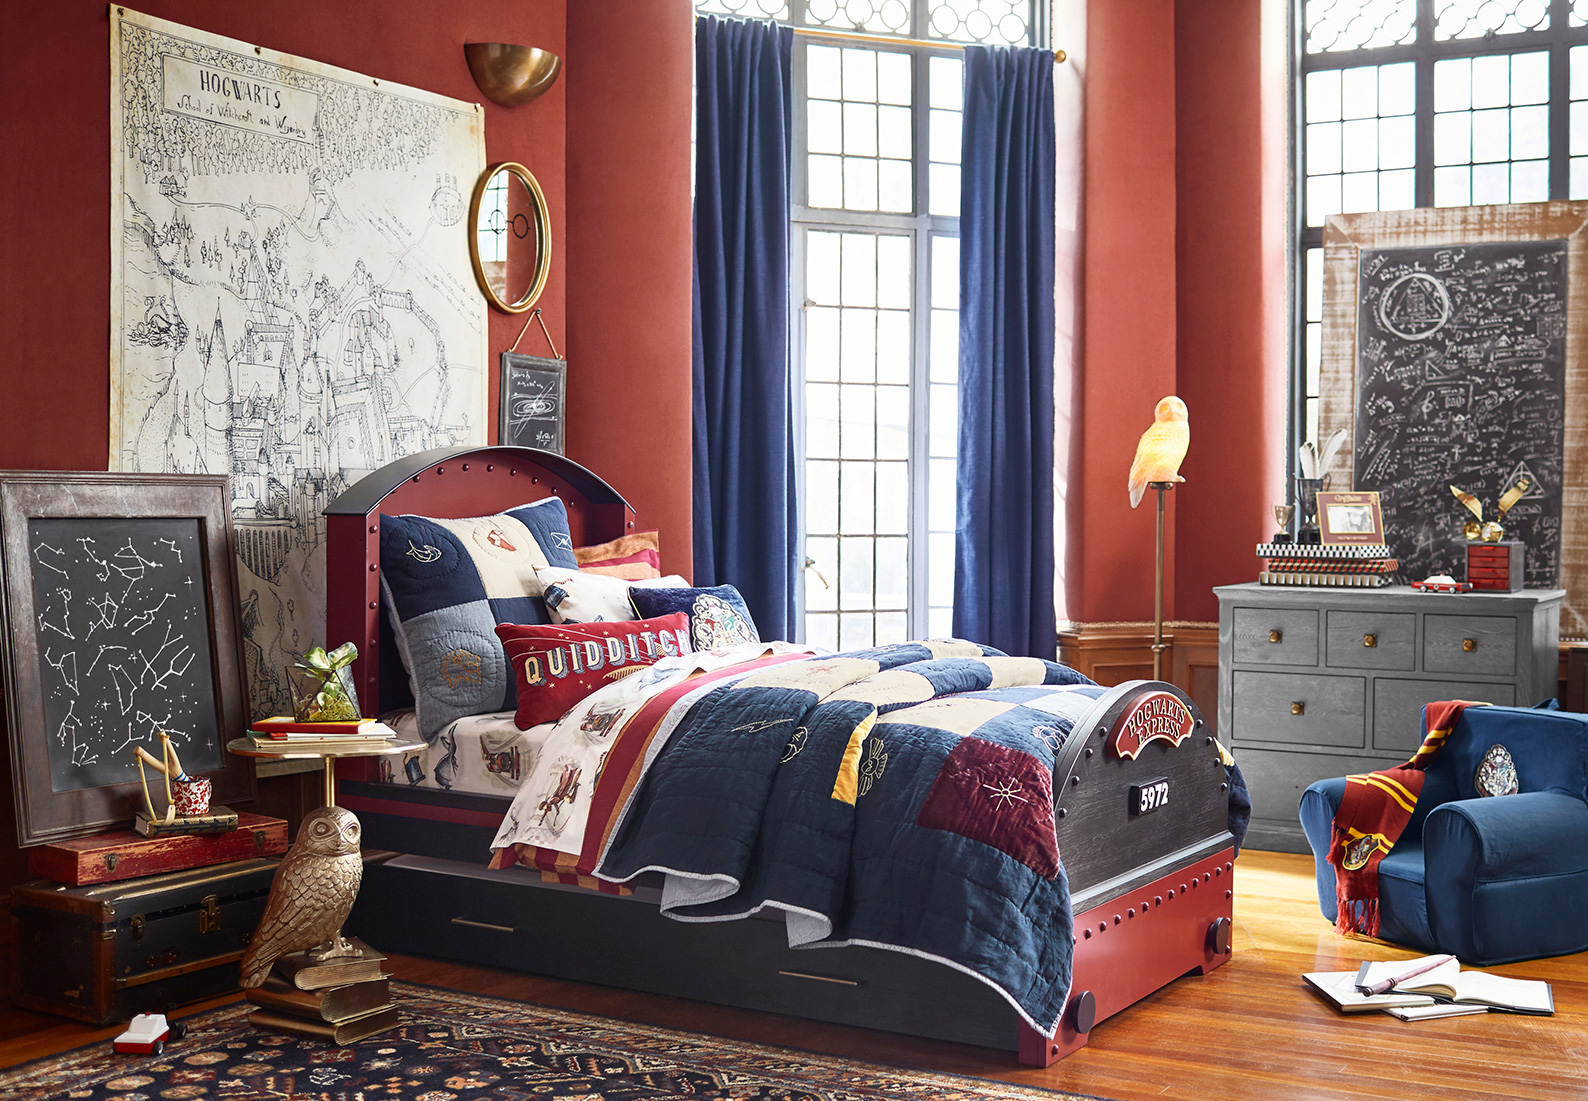 Hogwarts Bedroom Harry Potter Bedroom Dreams With Pottery Barn Kids The